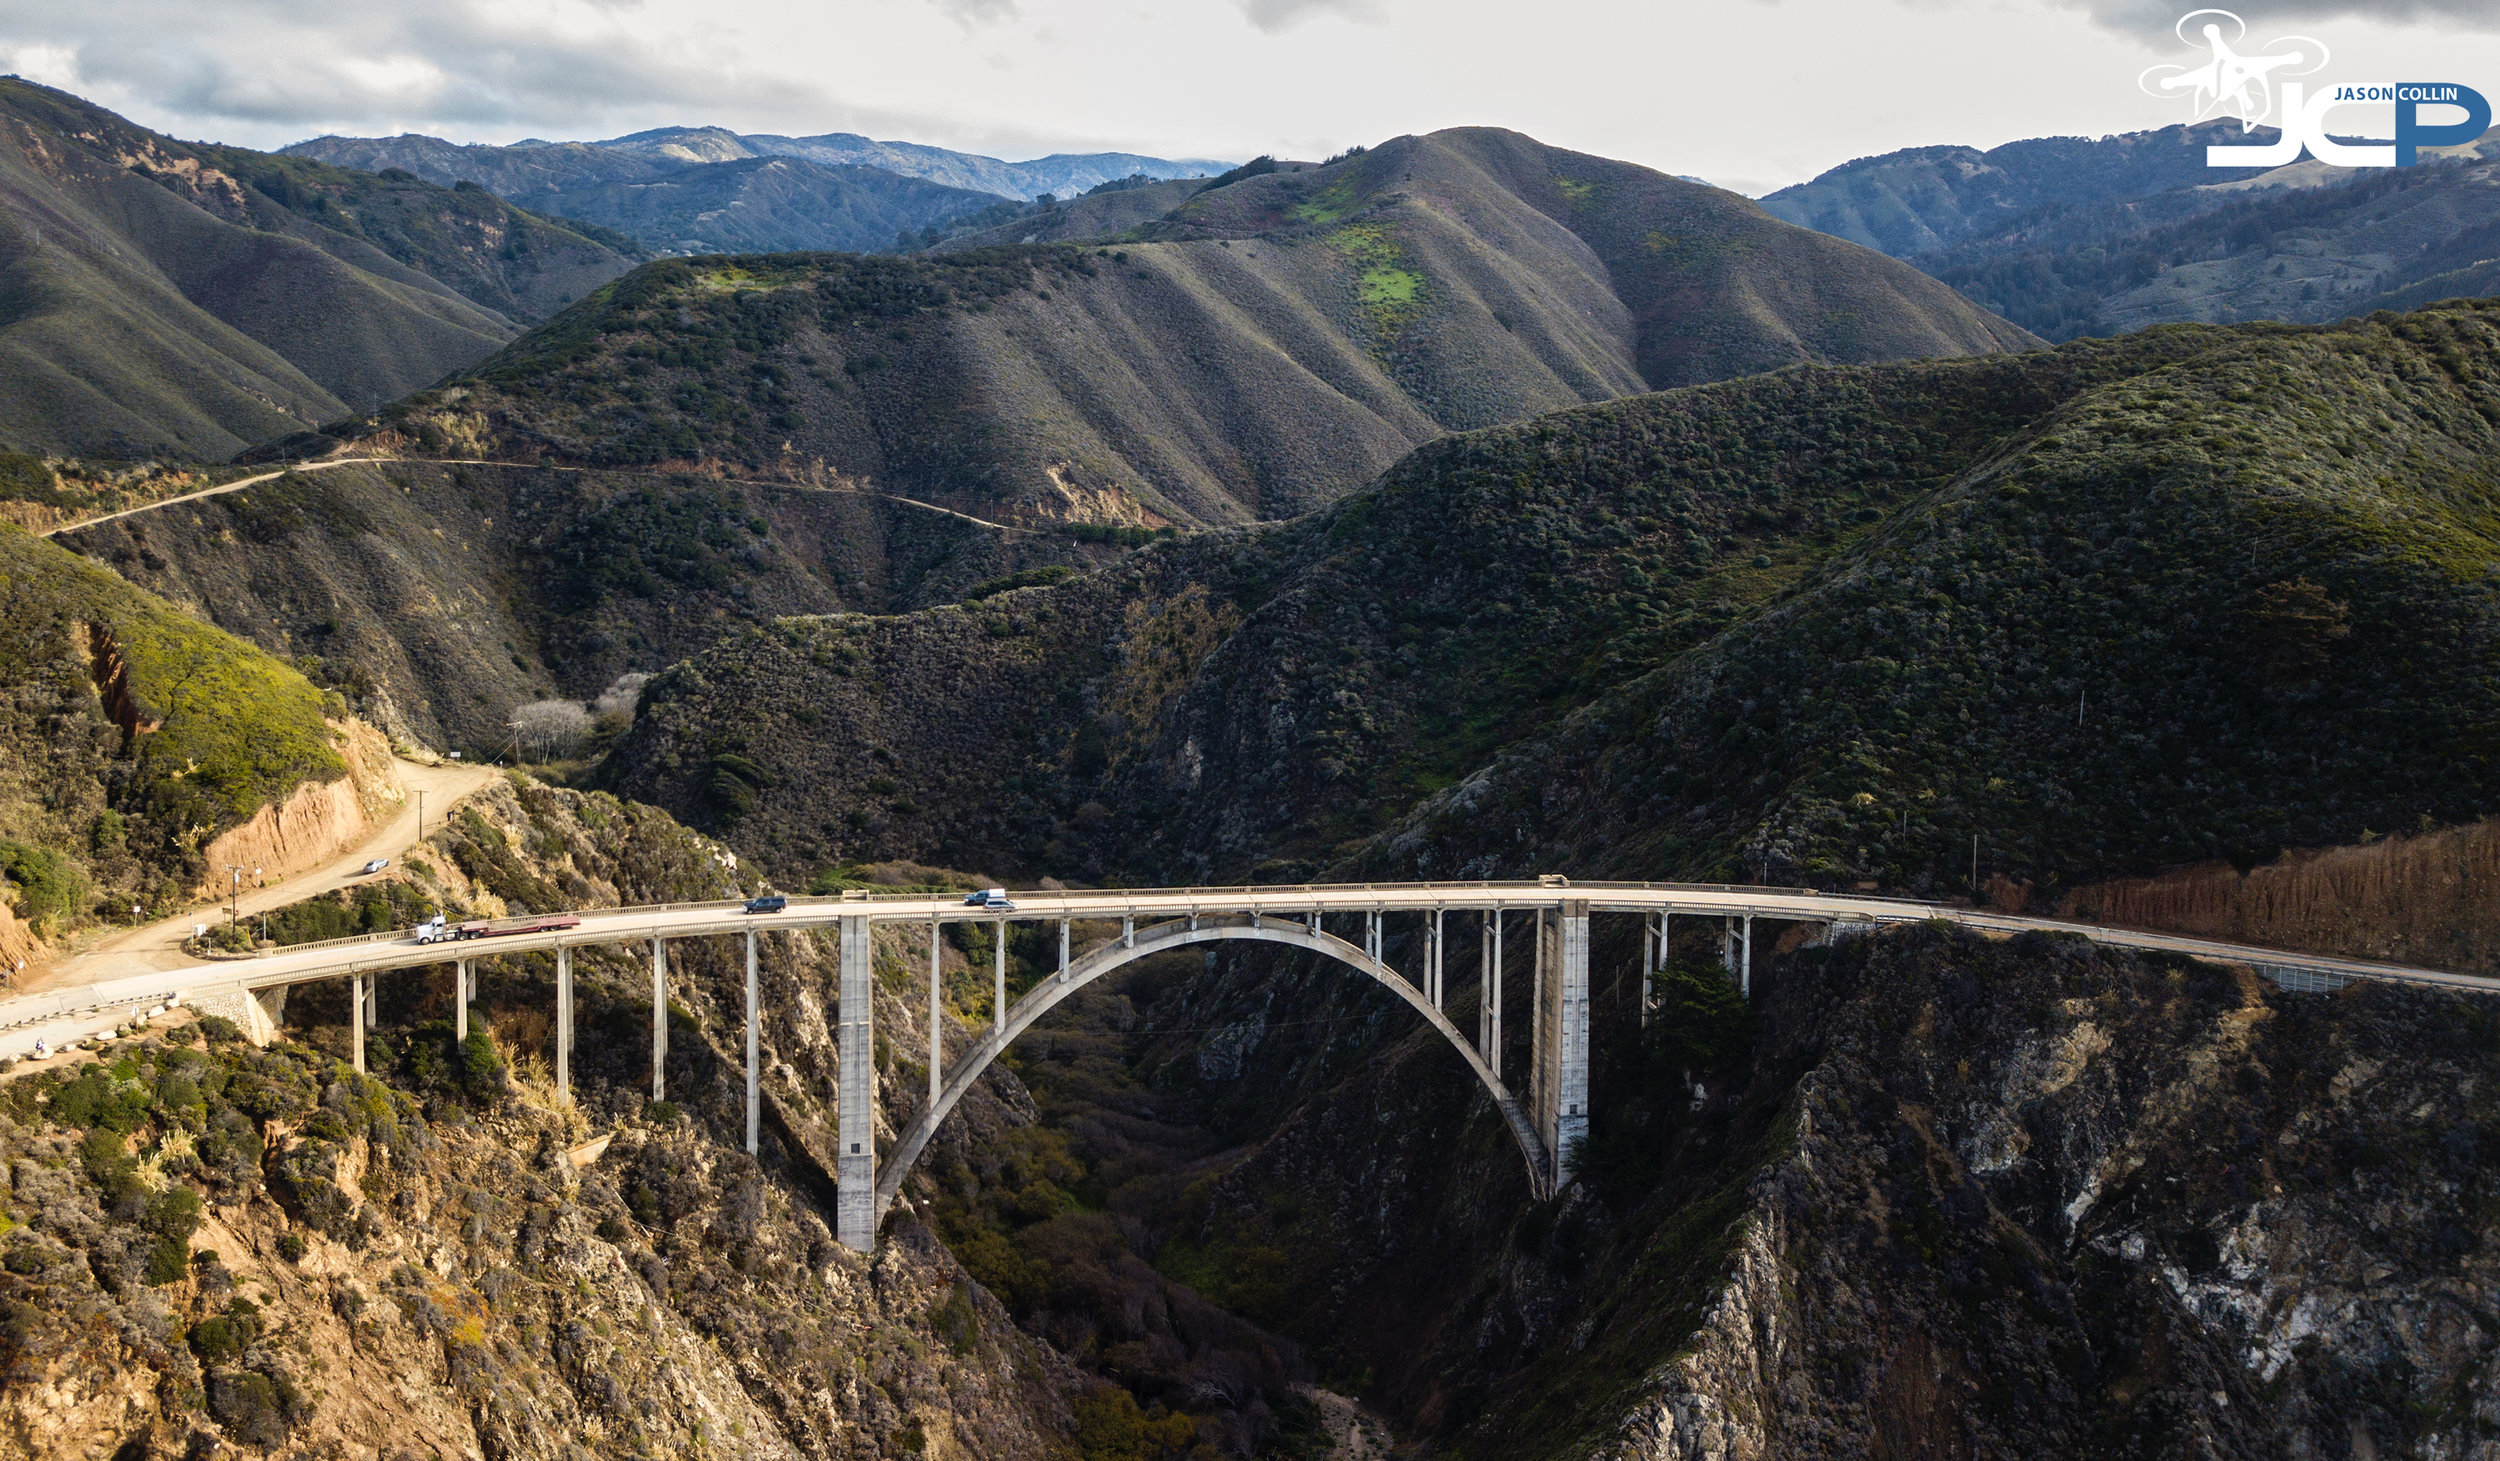 Drone's eye view of the Bixby Bridge from high above the Pacific Ocean - photo made with a DJI Mavic Pro drone & Polarpro ND4 filter